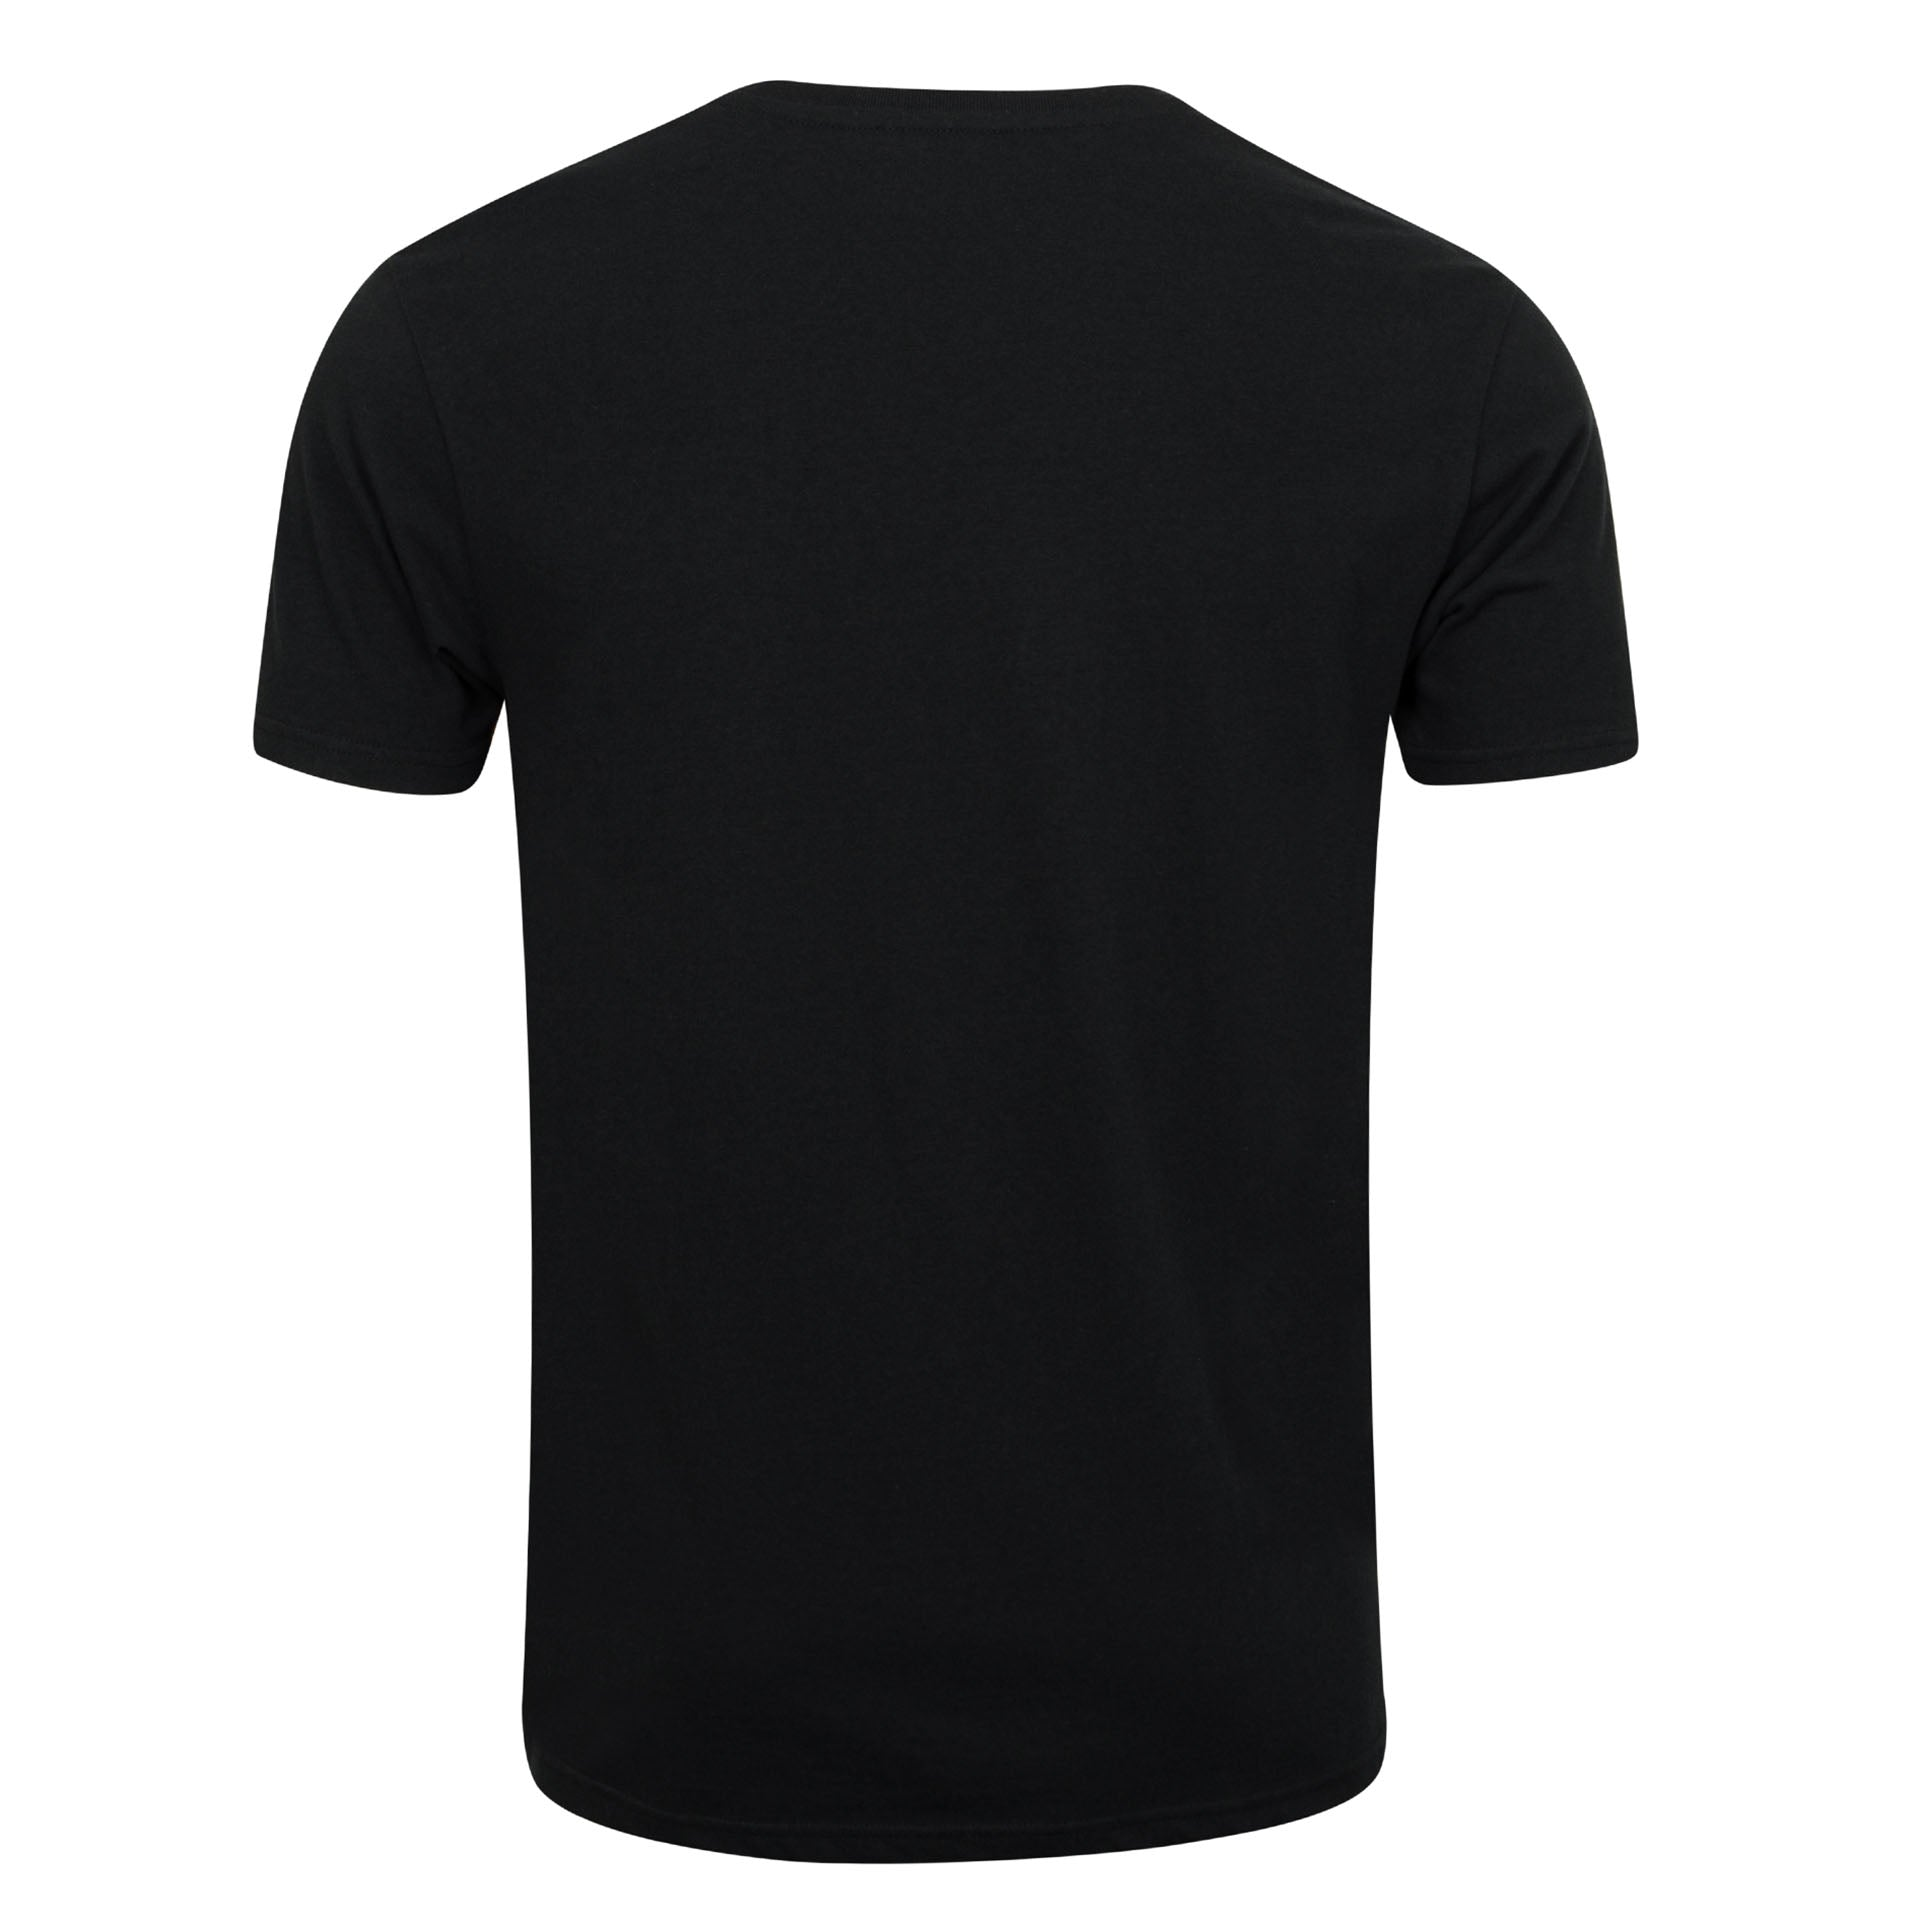 Tiide Classic Logo T-Shirt in Black